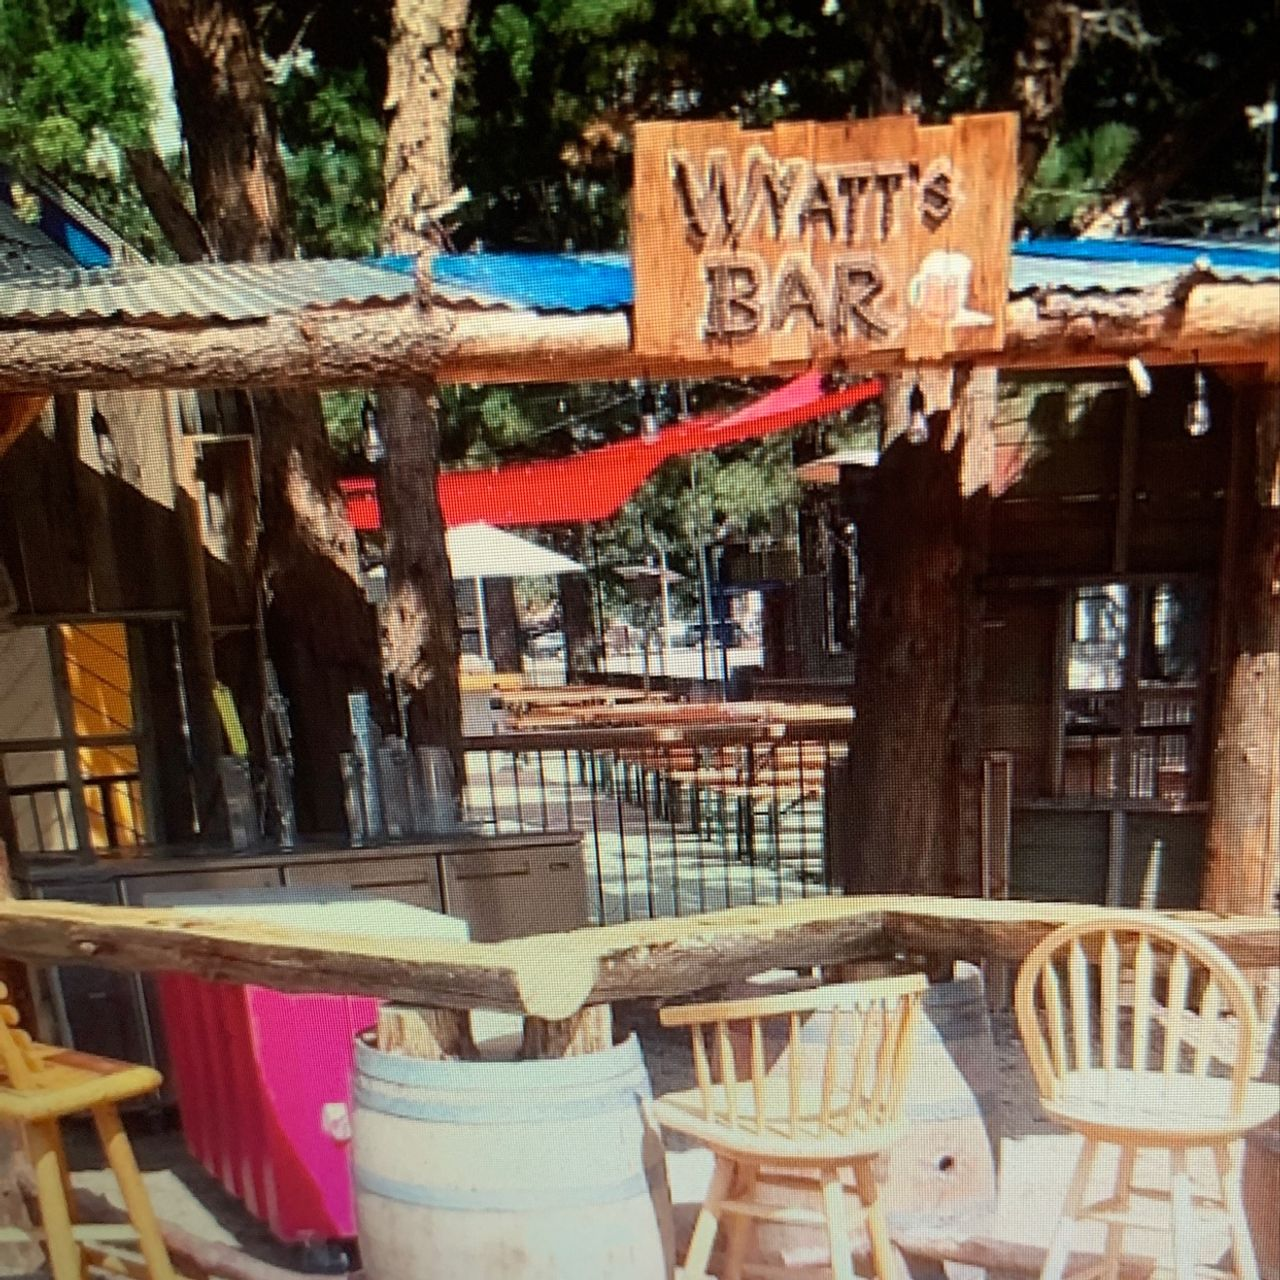 Wyatts Grill and Saloon